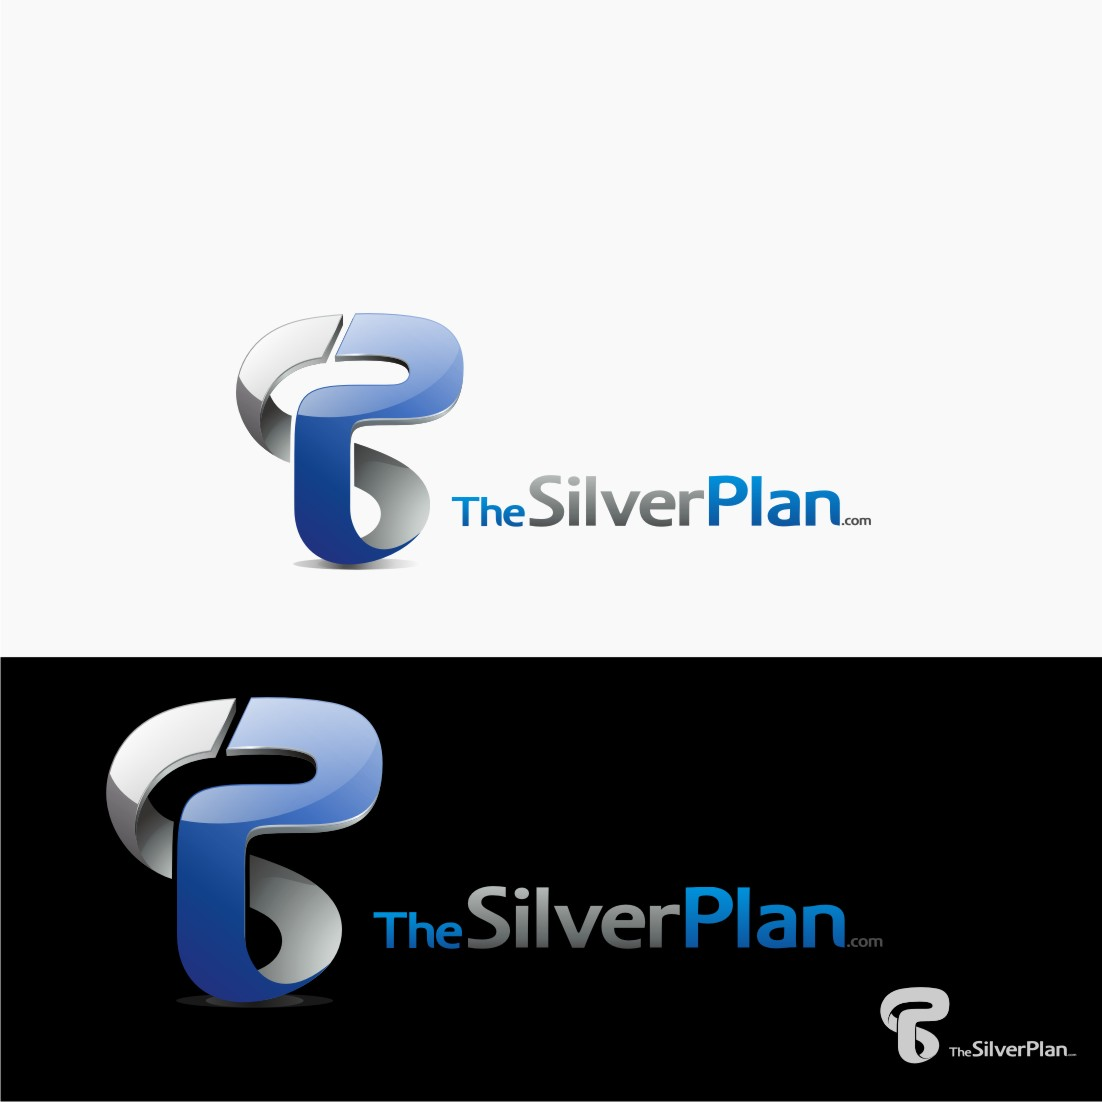 Logo Design by graphicleaf - Entry No. 70 in the Logo Design Contest New Logo Design for TheSilverPlan.com.